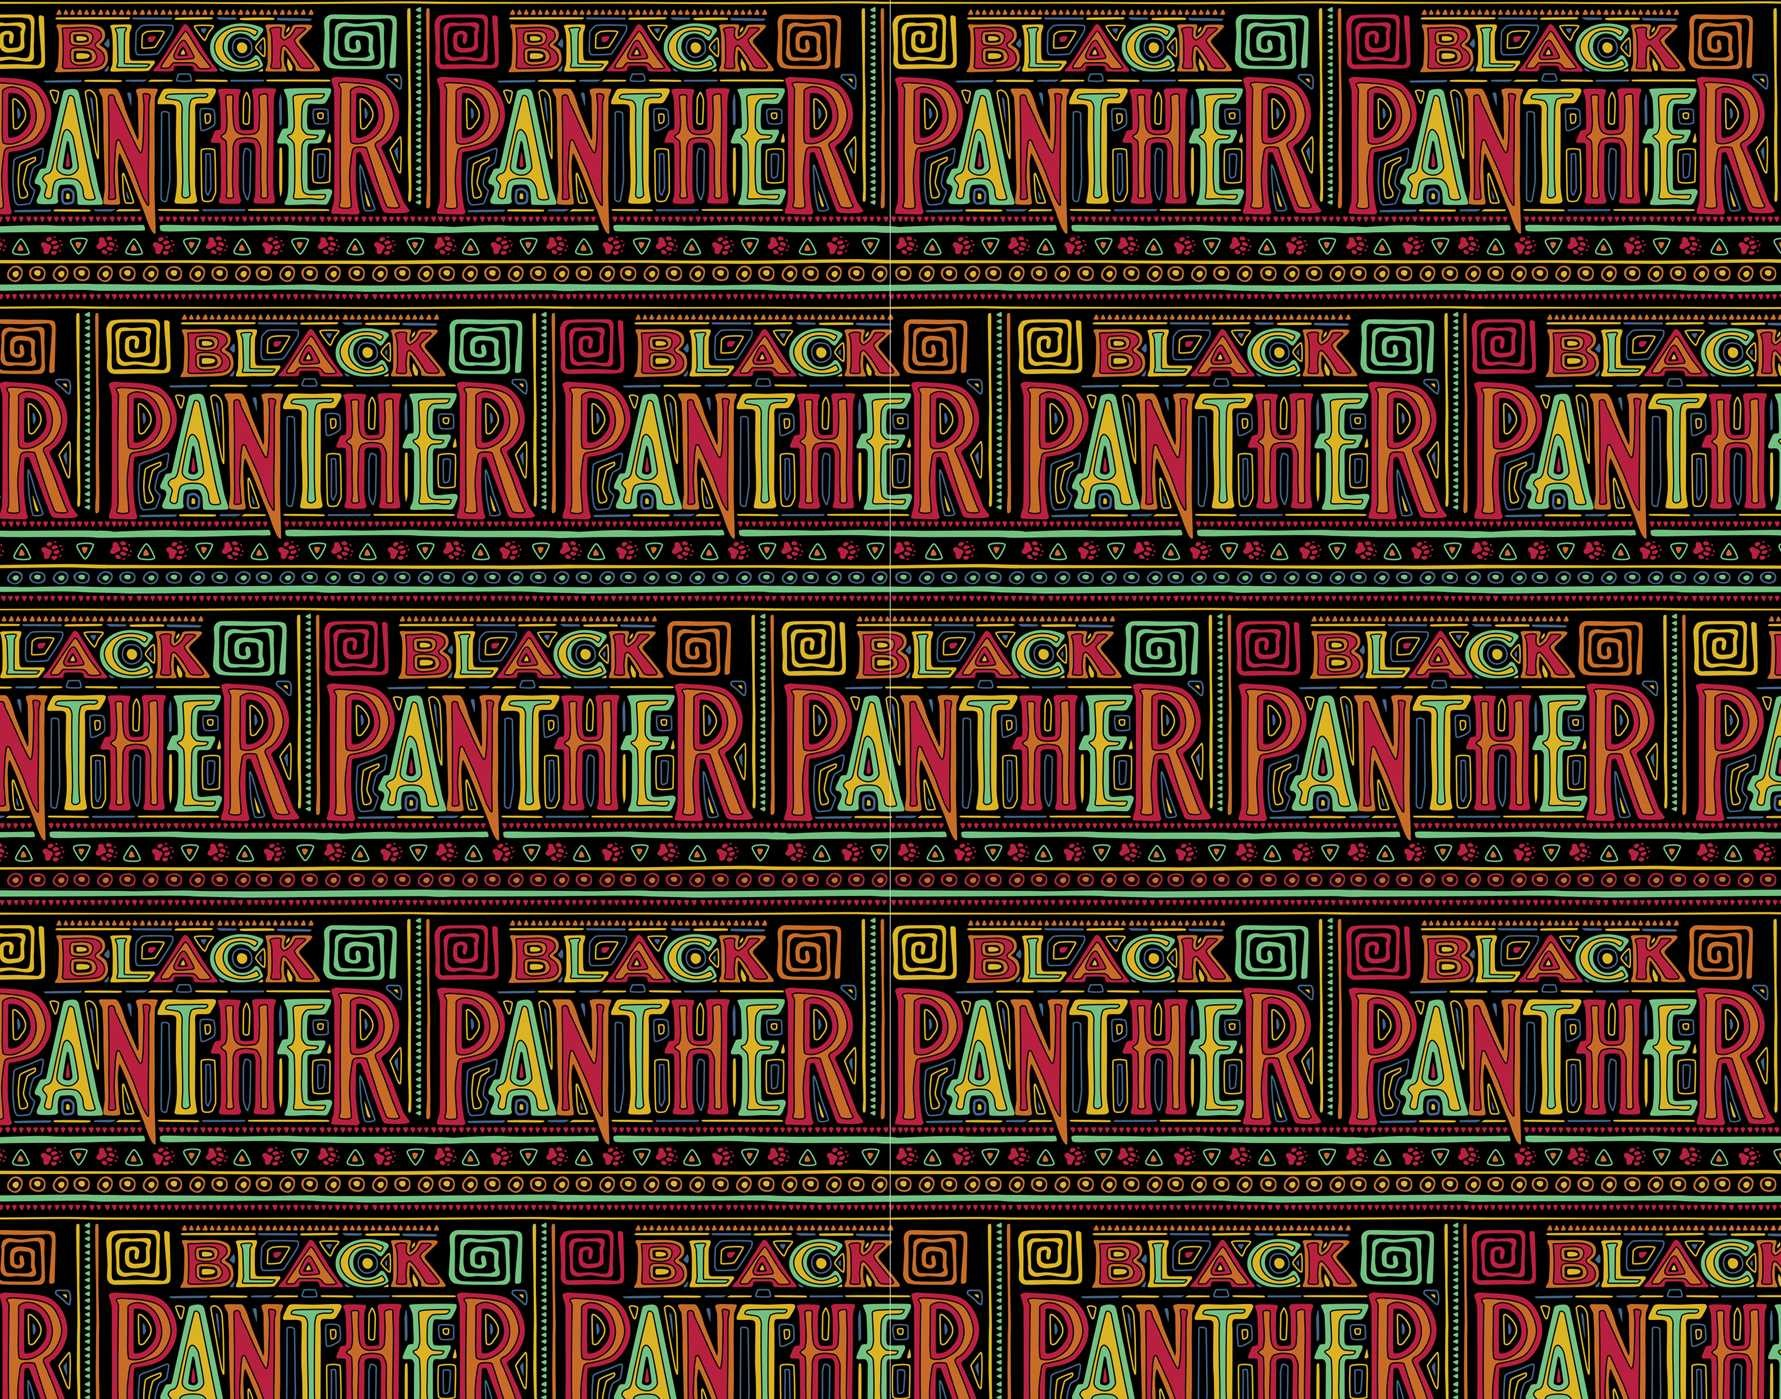 Marvels black panther hardcover ruled journal 9781683833154.in03